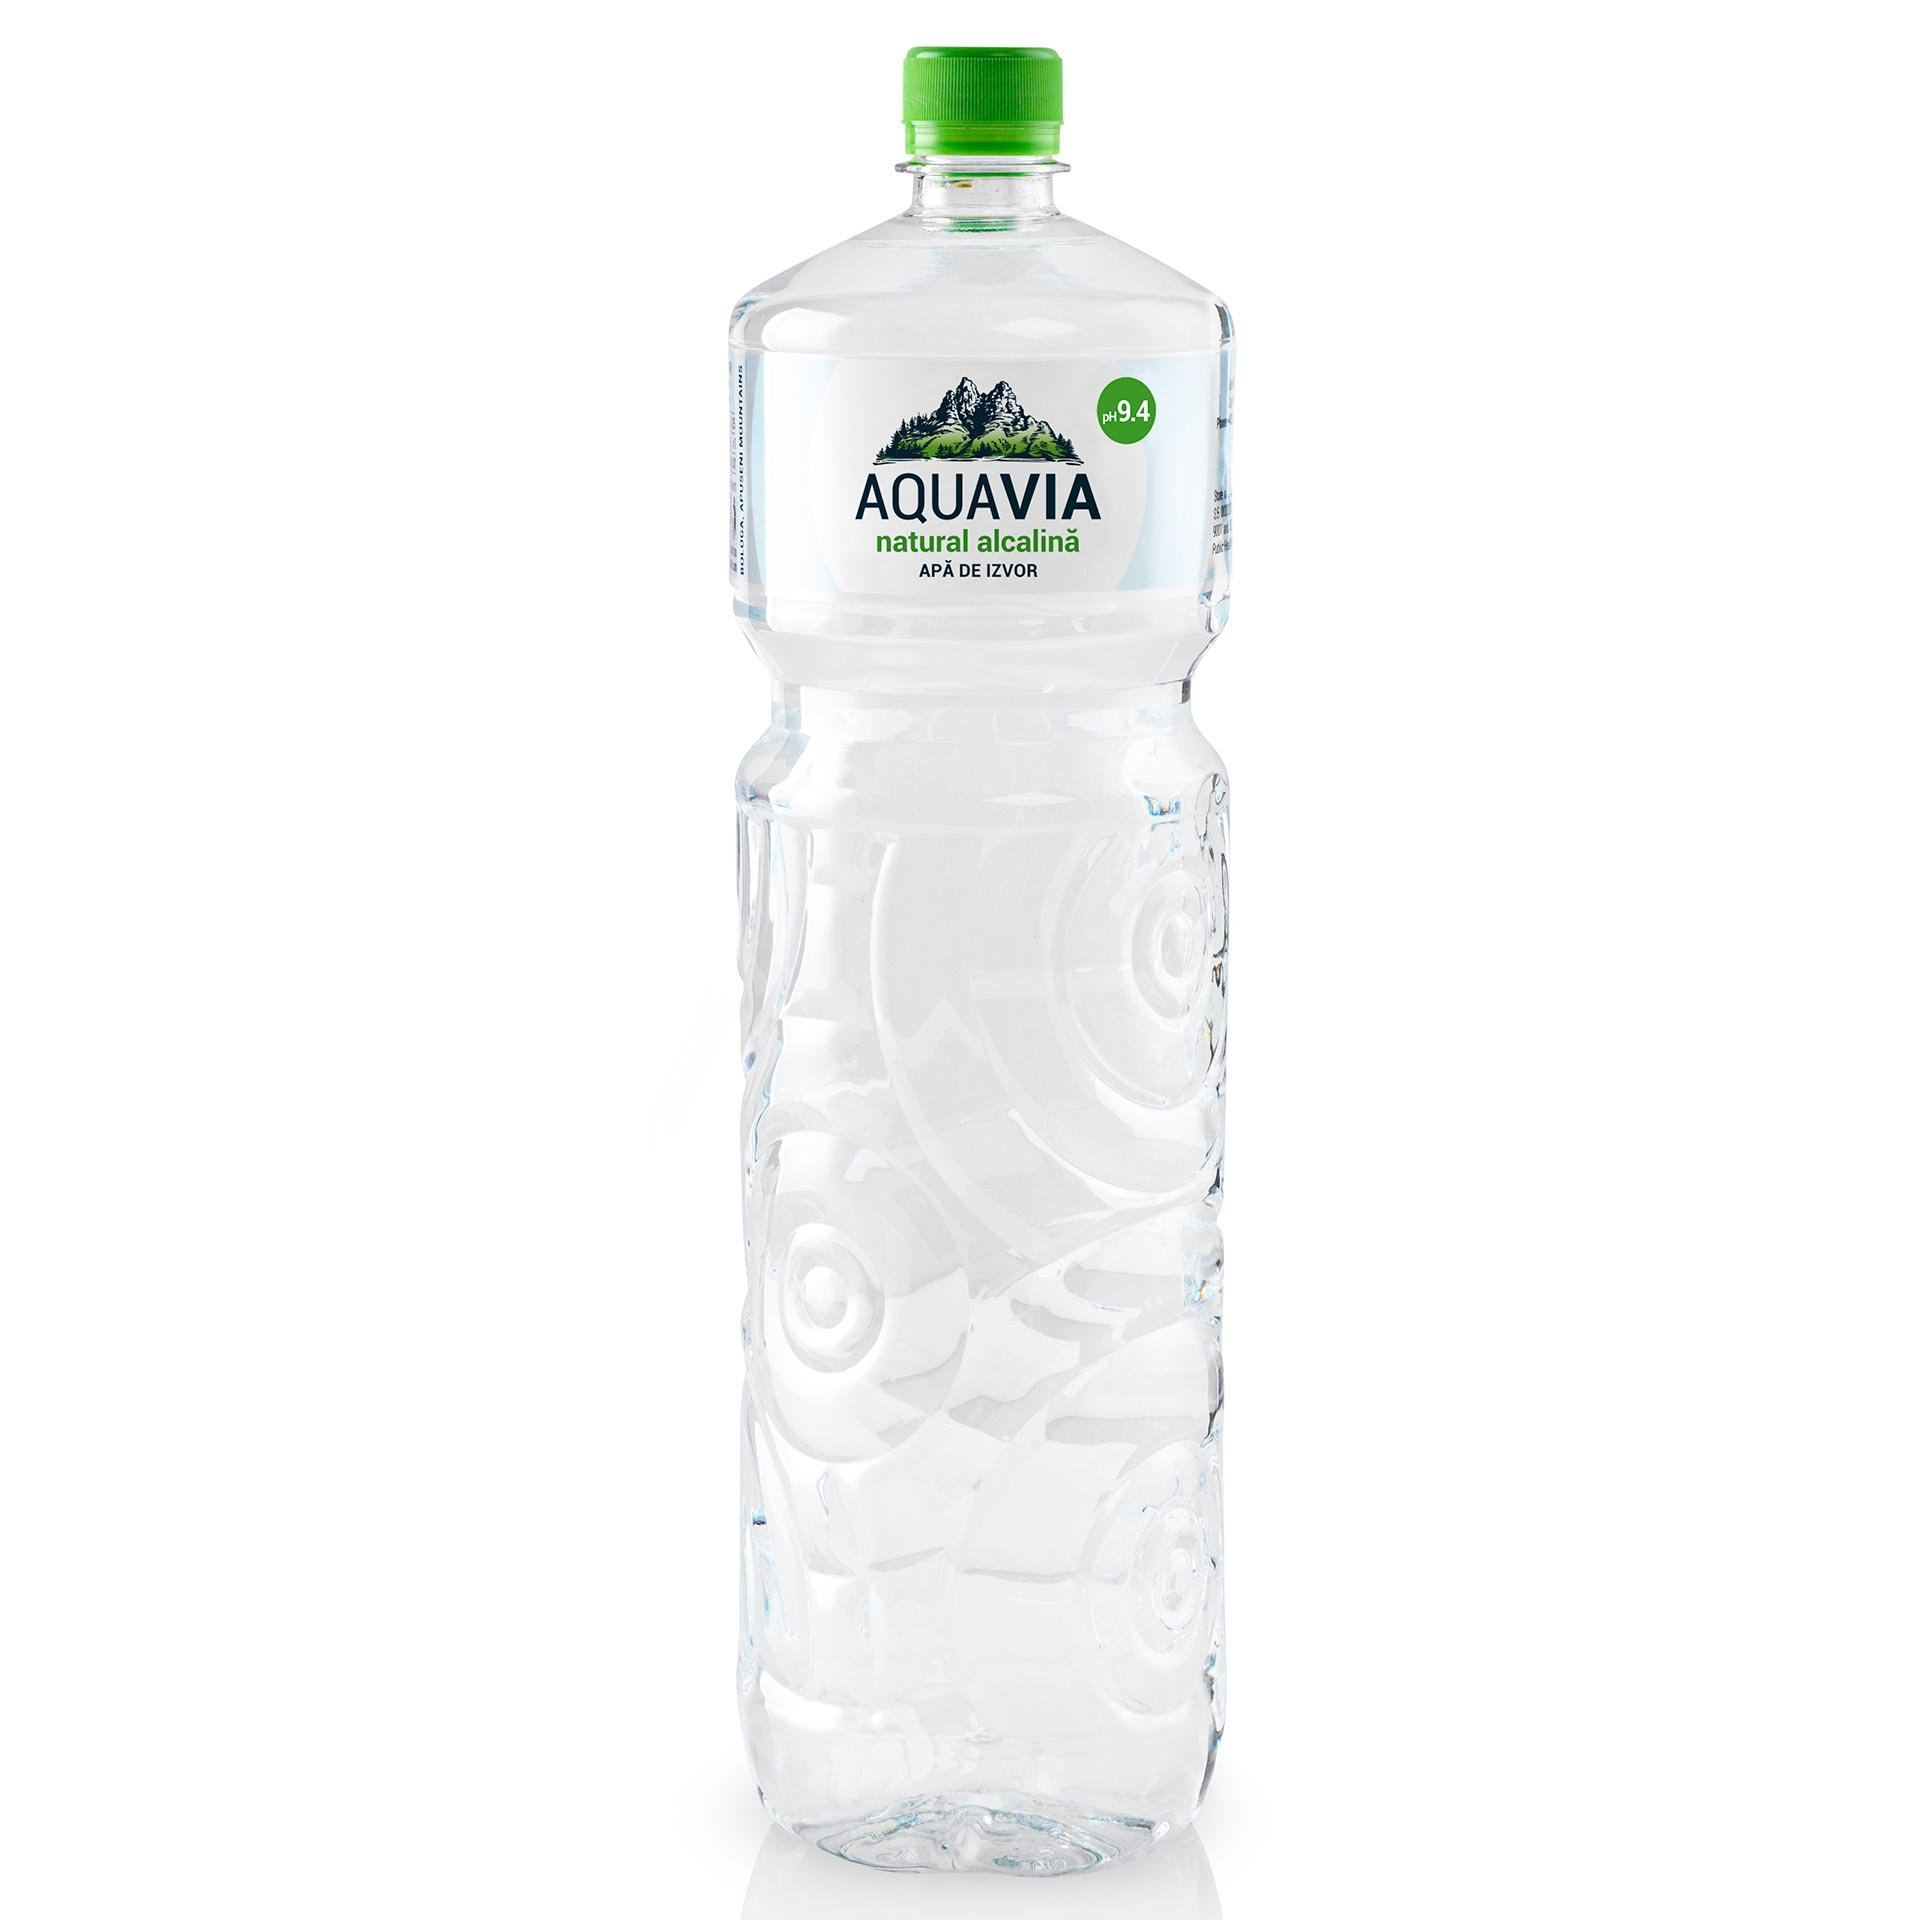 aquavia apa de izvor natural alcalina 9 4 ph 2l shopidoki